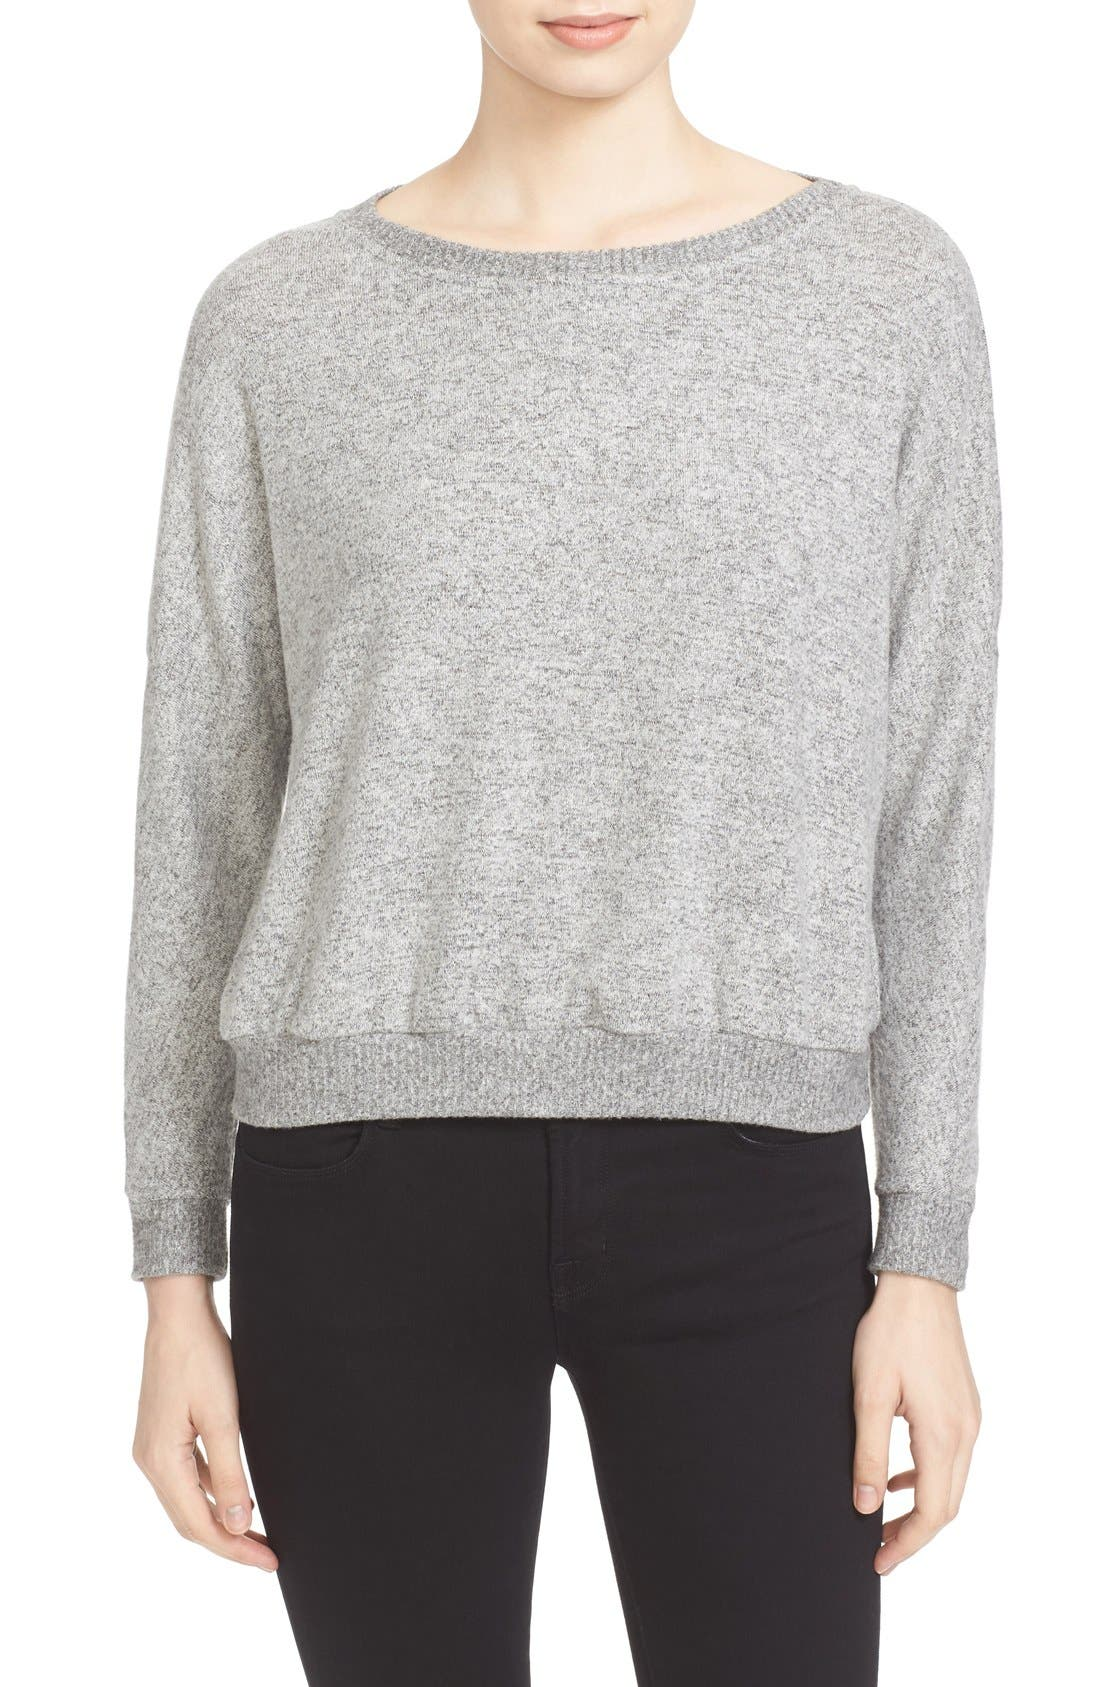 Soft Joie Giardia Drop Shoulder Sweater,                         Main,                         color, Heather Grey